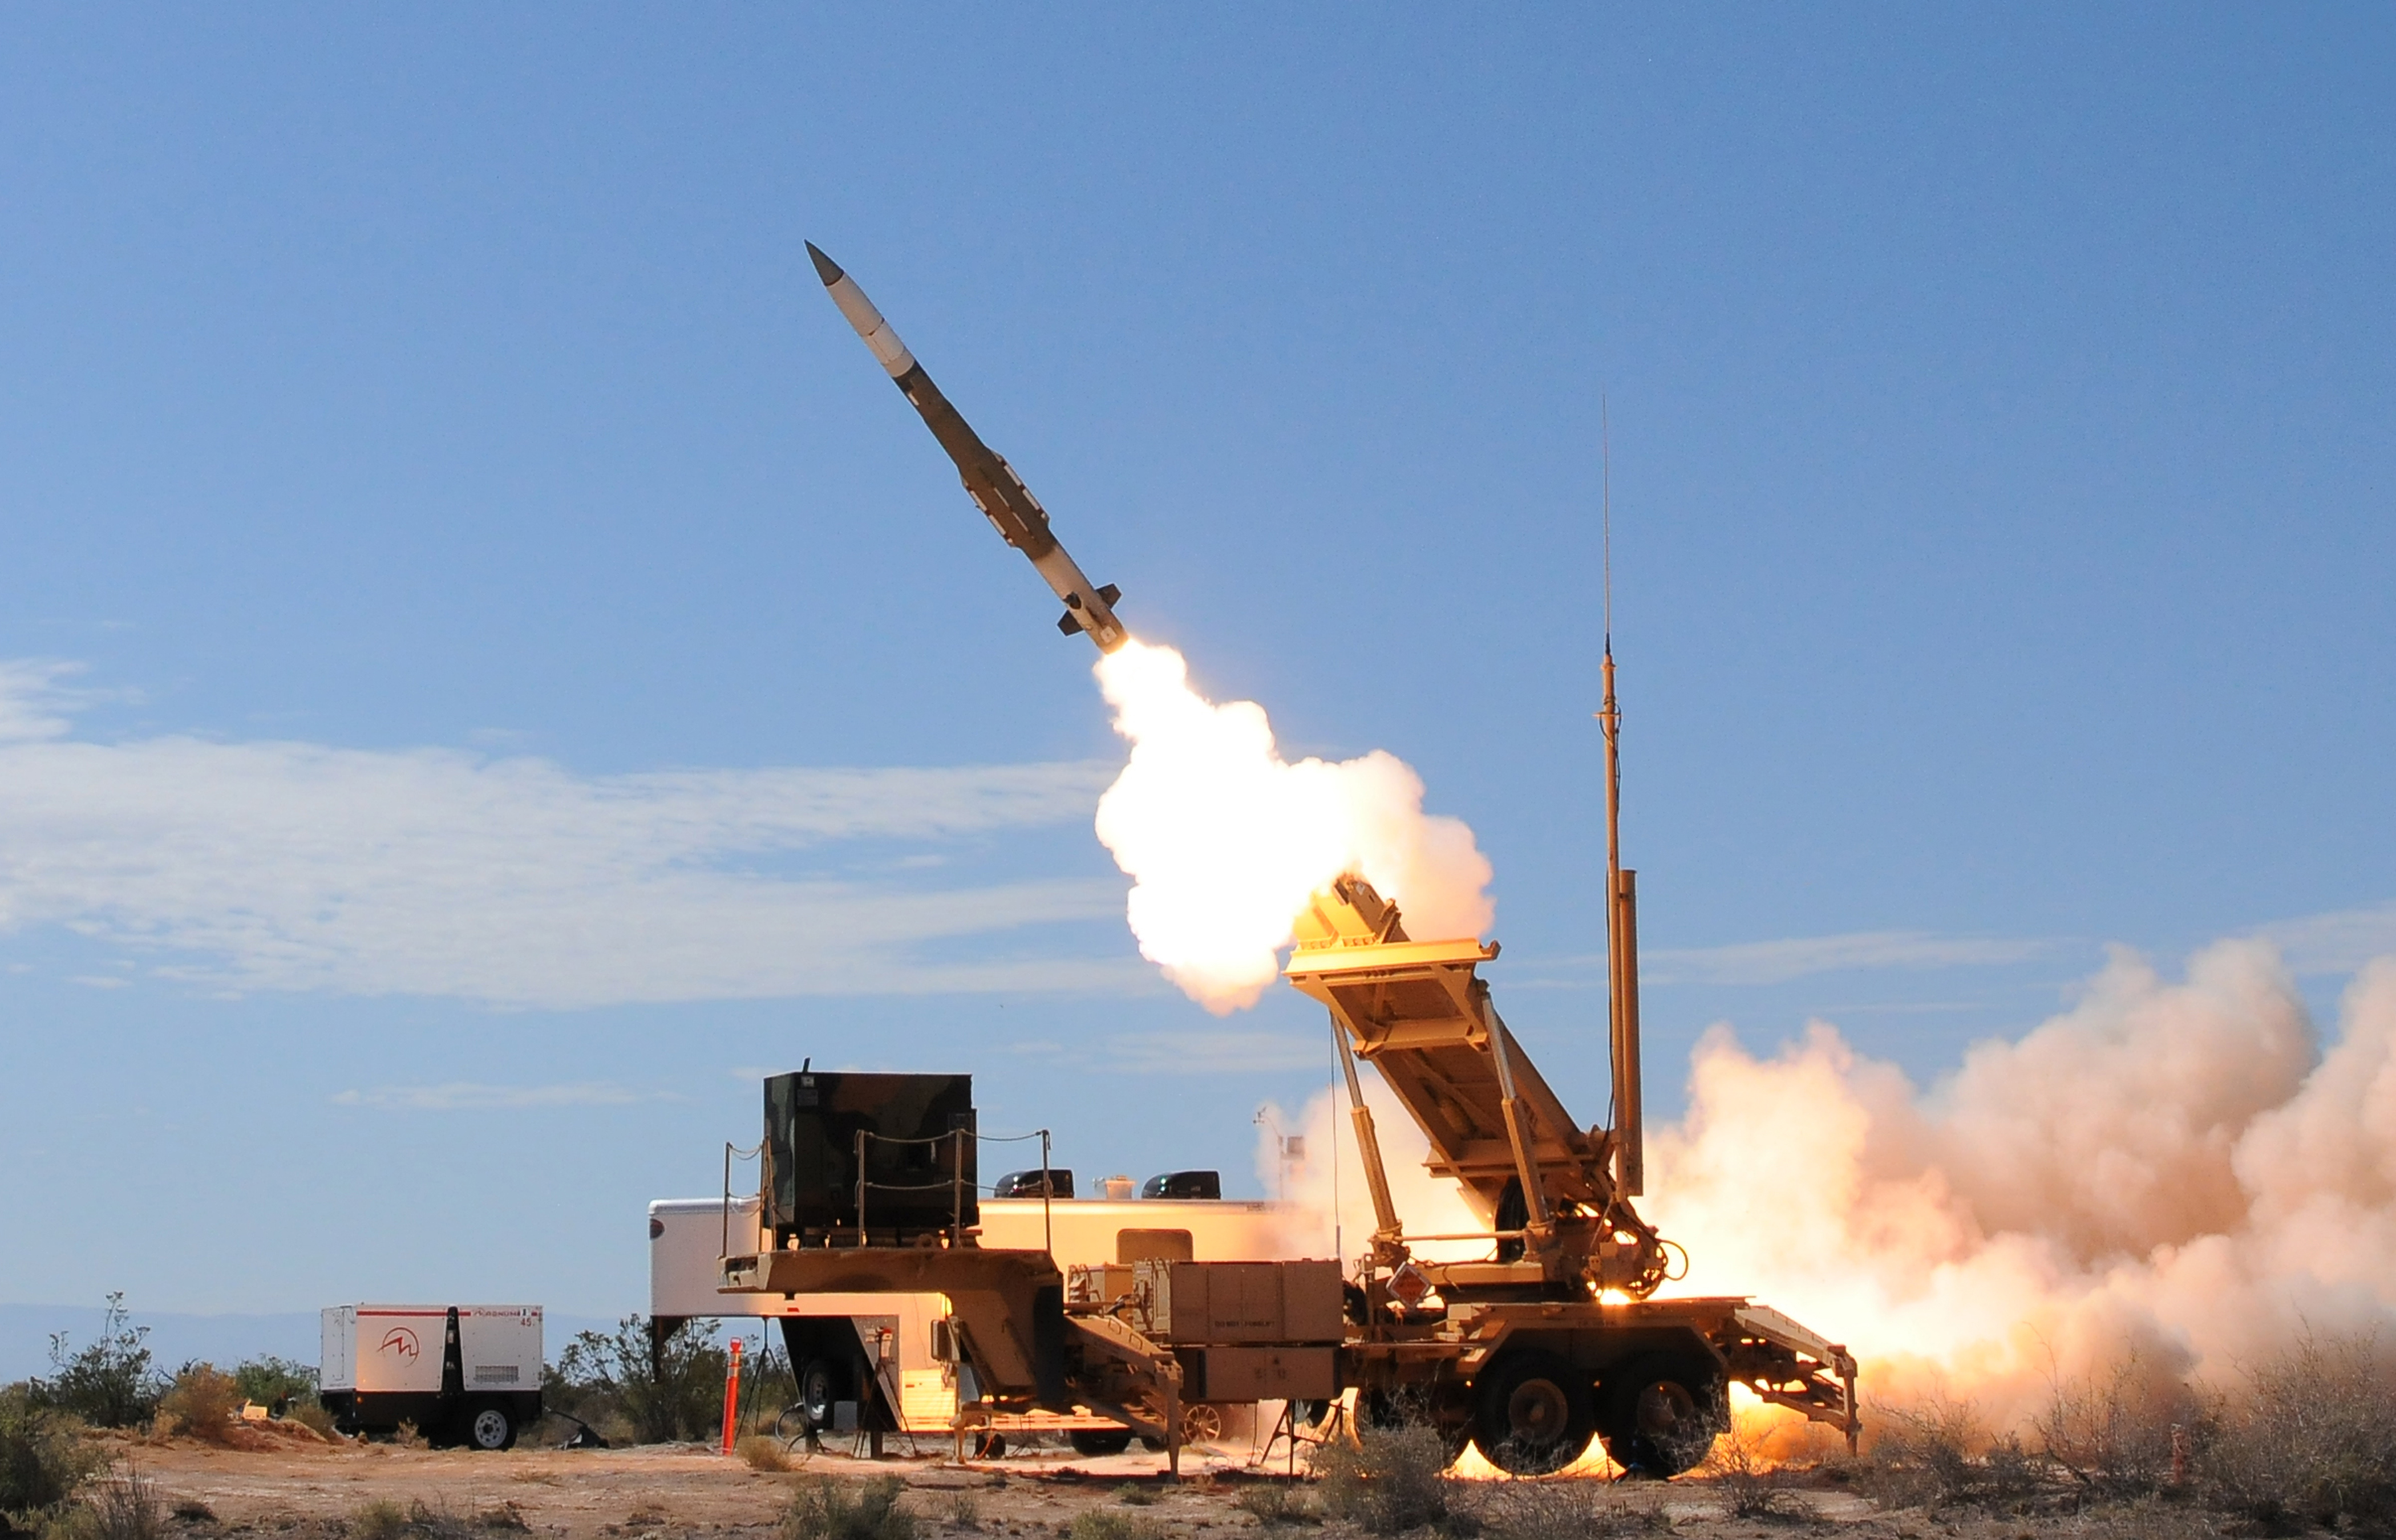 Boeing expands Alabama PAC-3 missile seeker facility